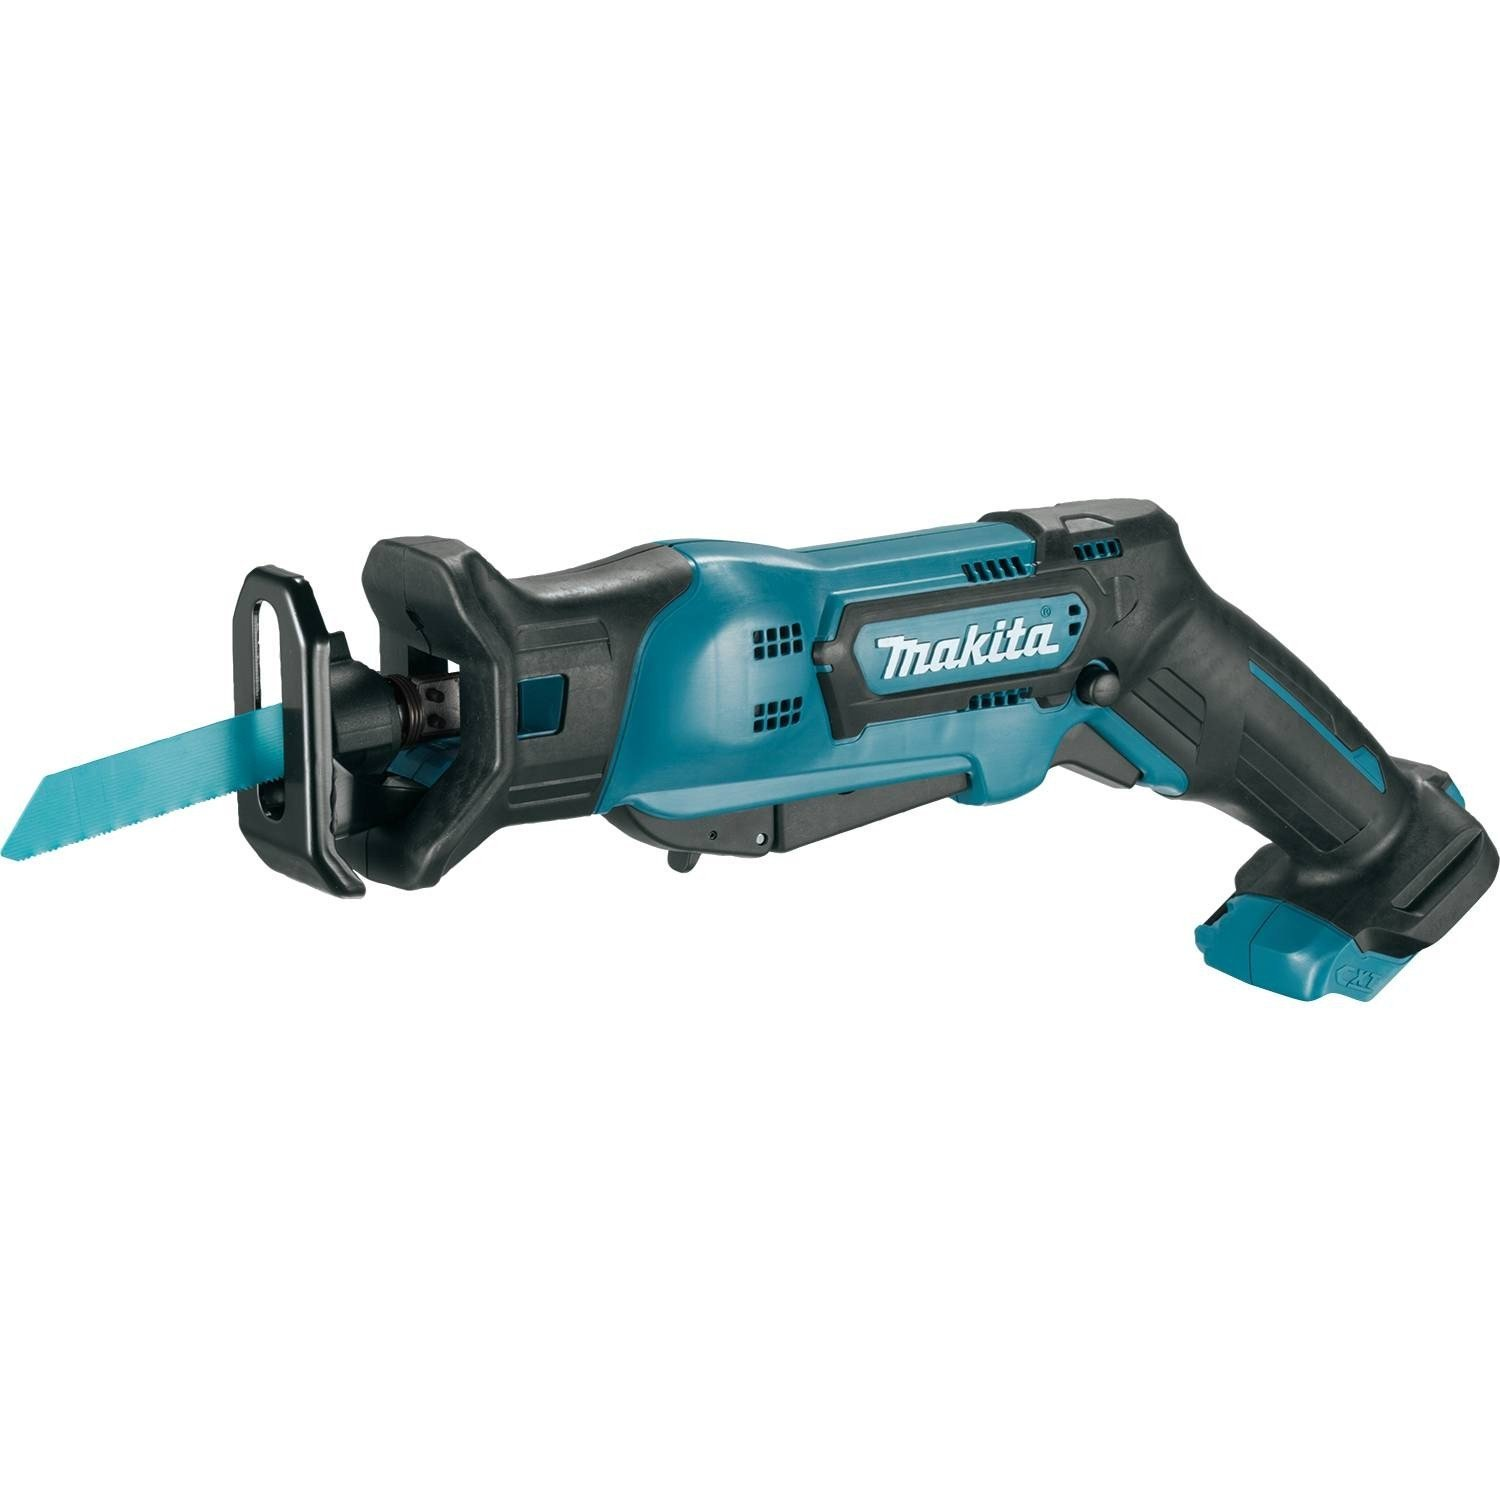 makita rj03z 12 volt lithium ion cordless reciprocating saw bare tool. Black Bedroom Furniture Sets. Home Design Ideas